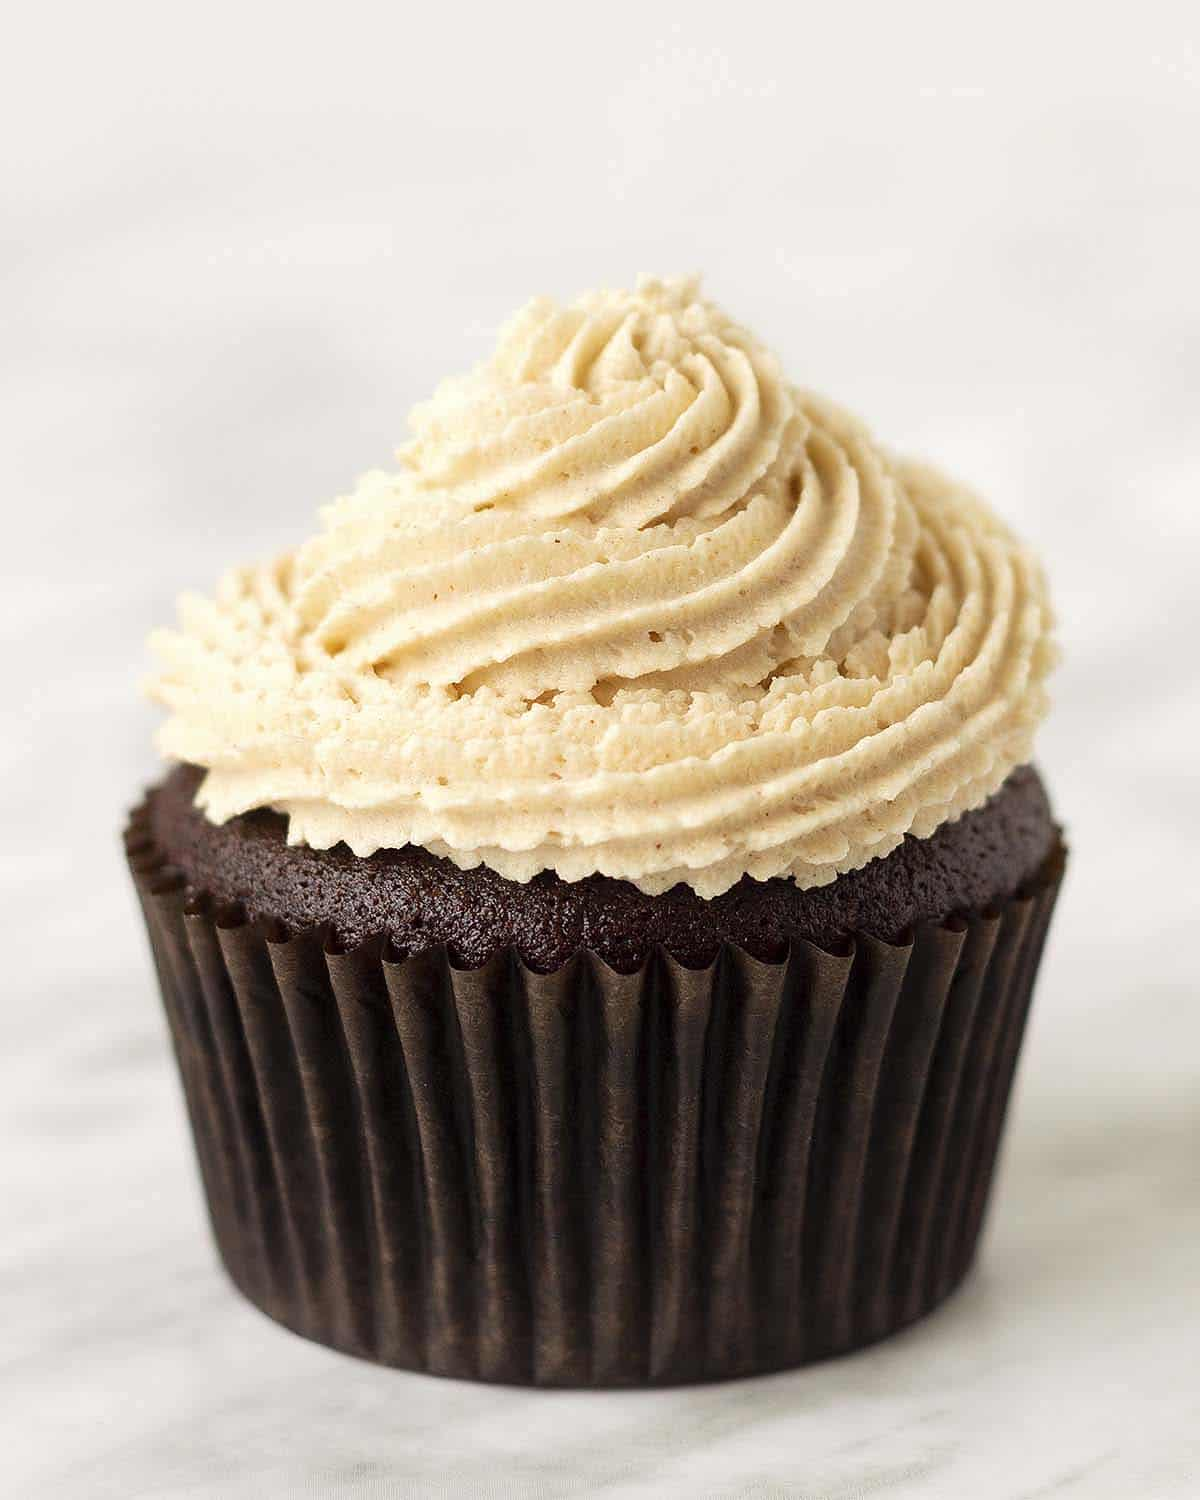 A chocolate cupcake topped with peanut butter flavoured frosting.